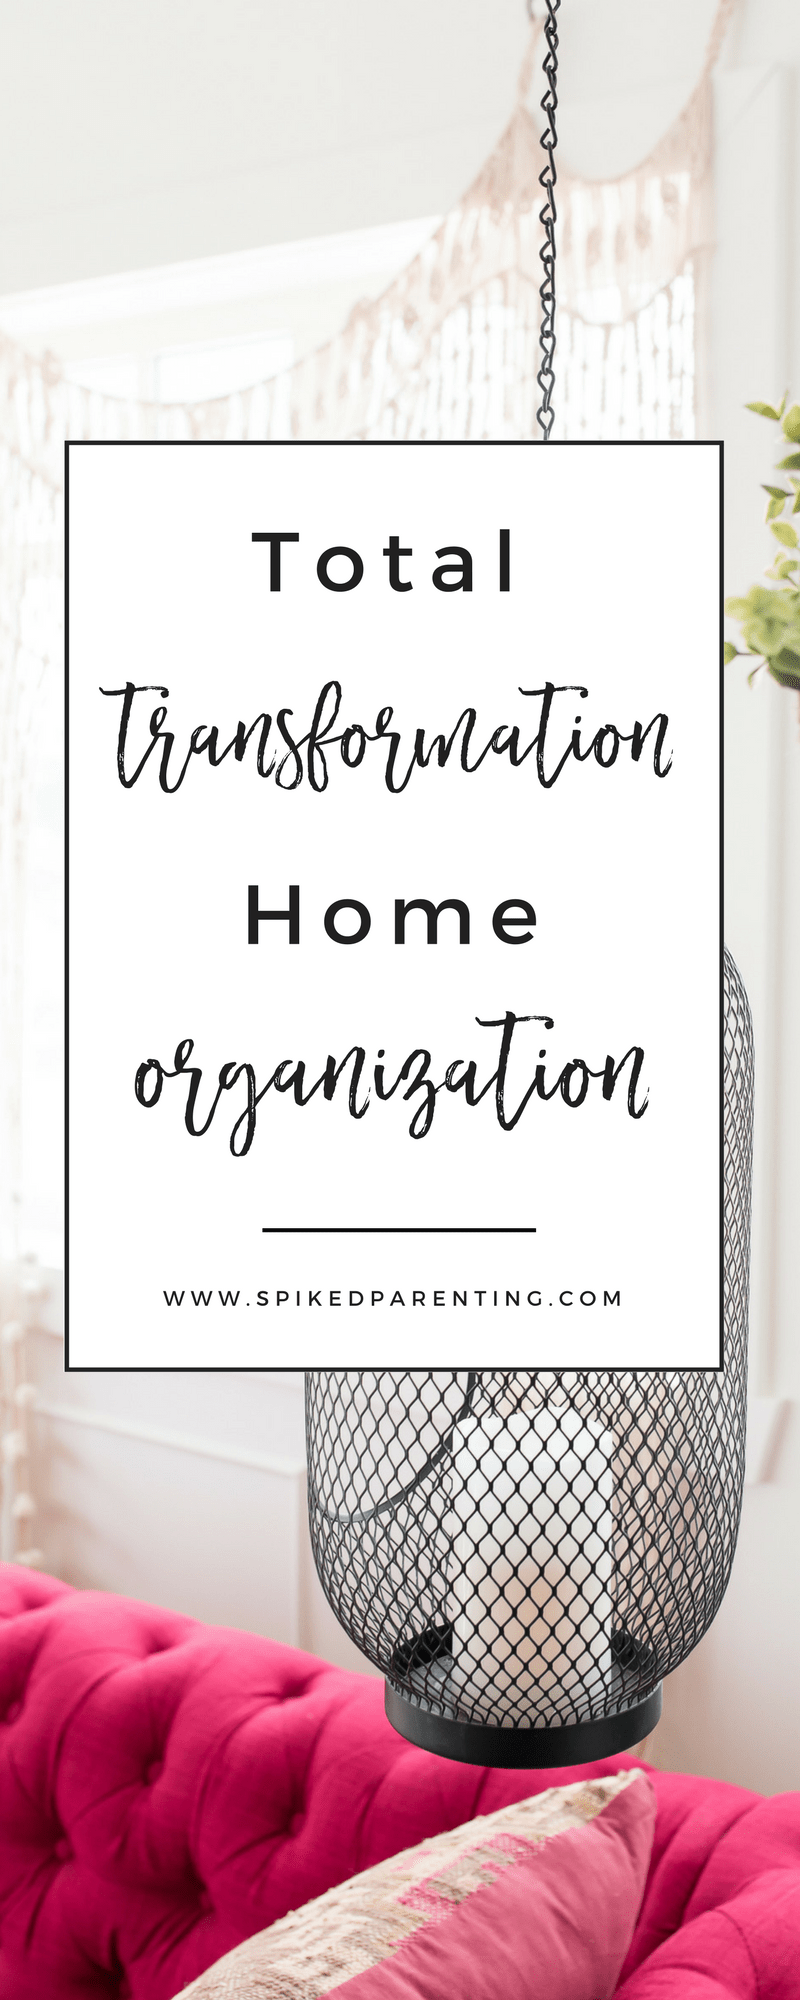 Workbooks total transformation workbook : Total Transformation Home Organization Course | SpikedParenting